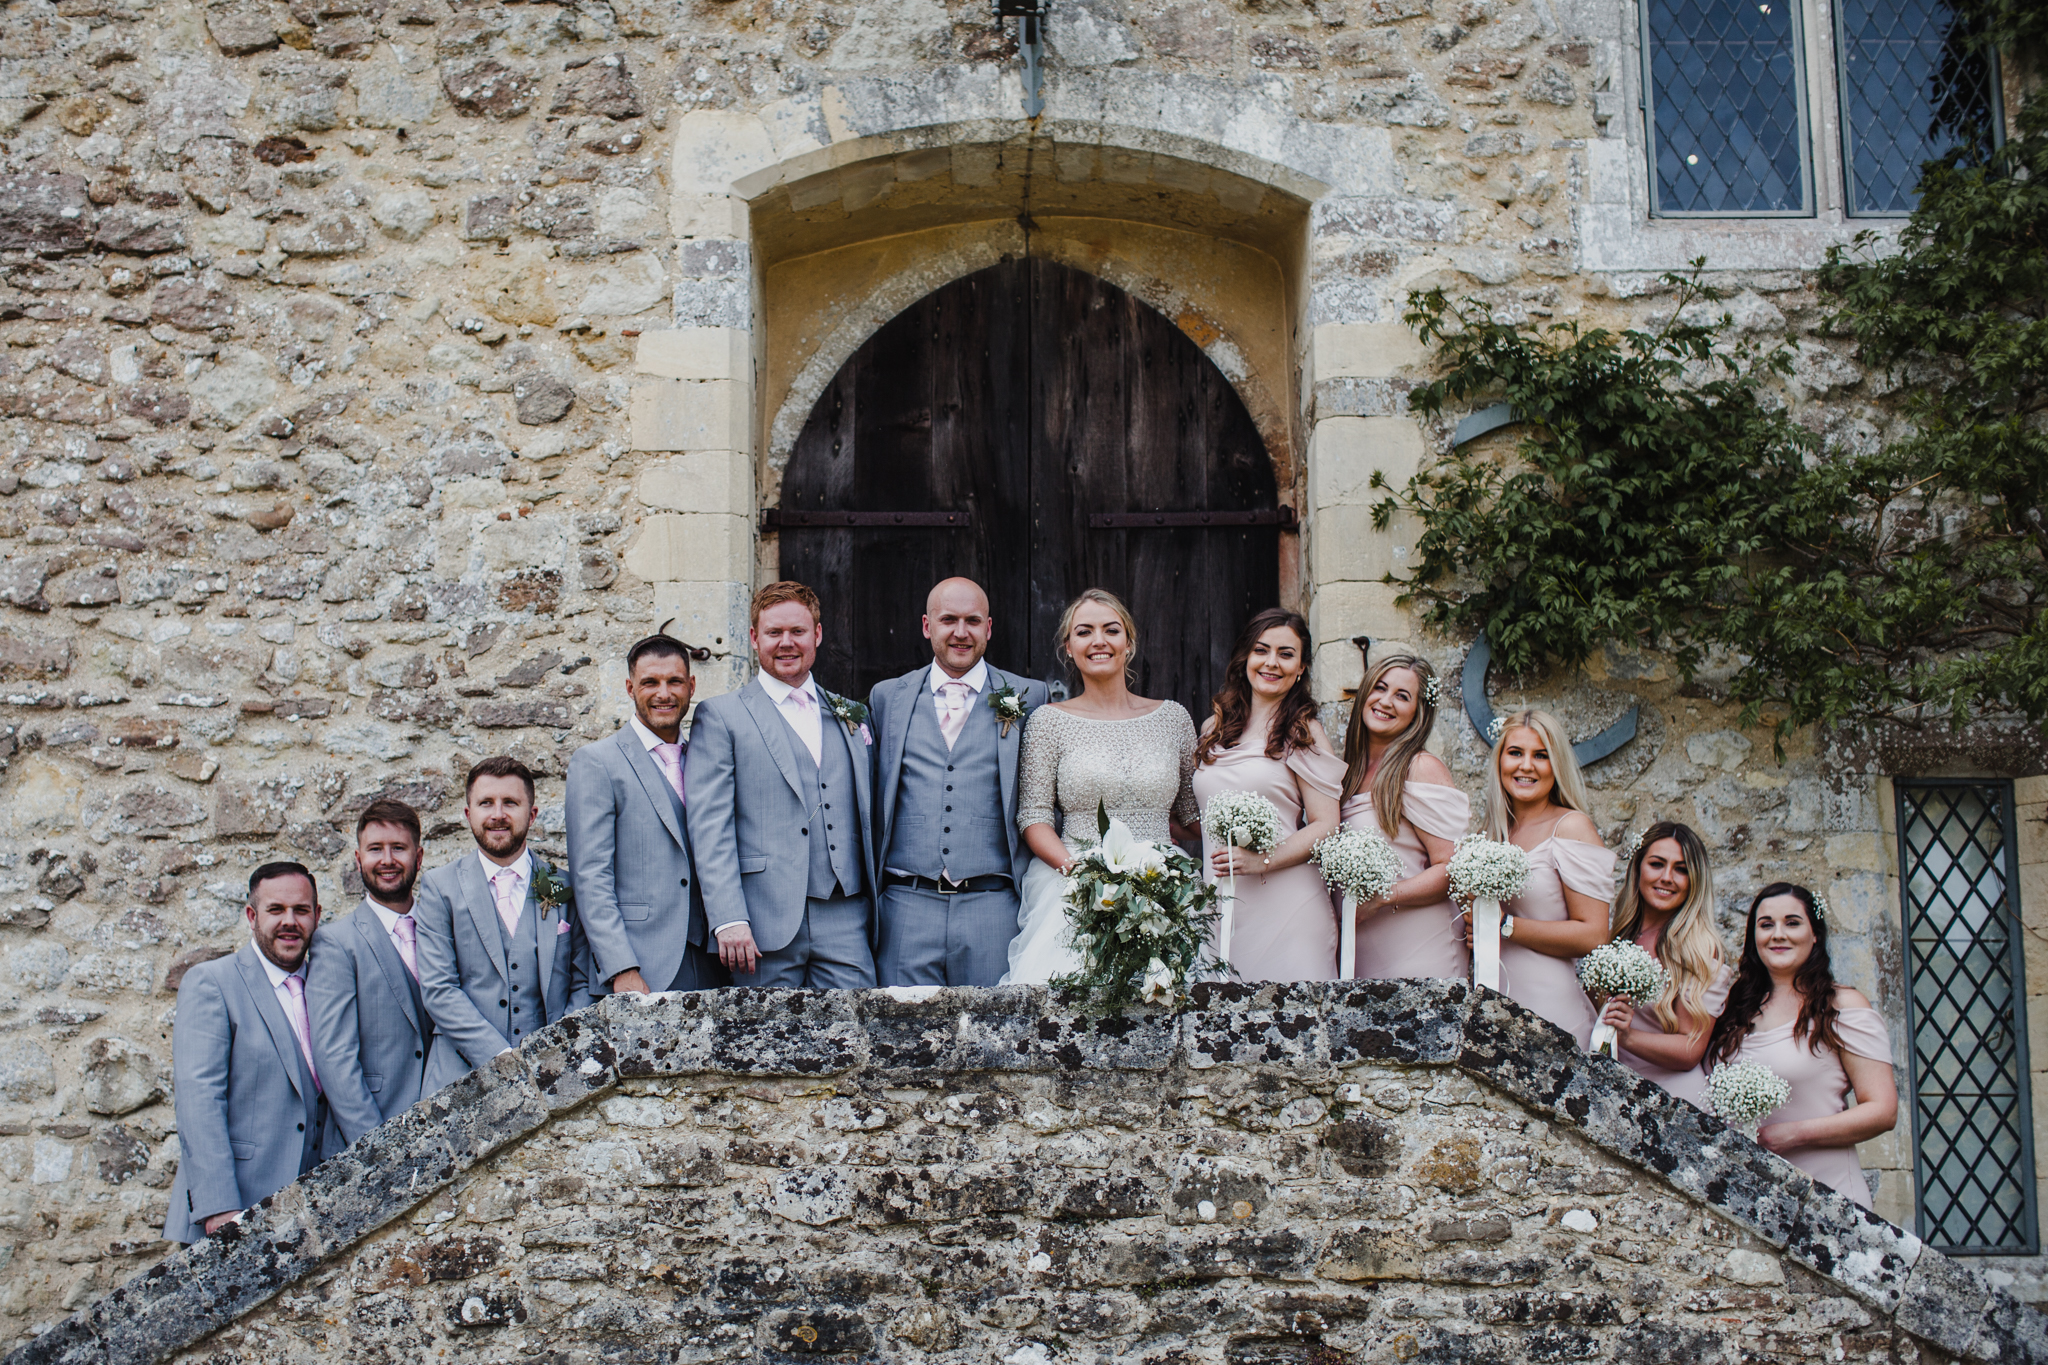 Bridal party lined up smiling in front of stone wall venue on stairs